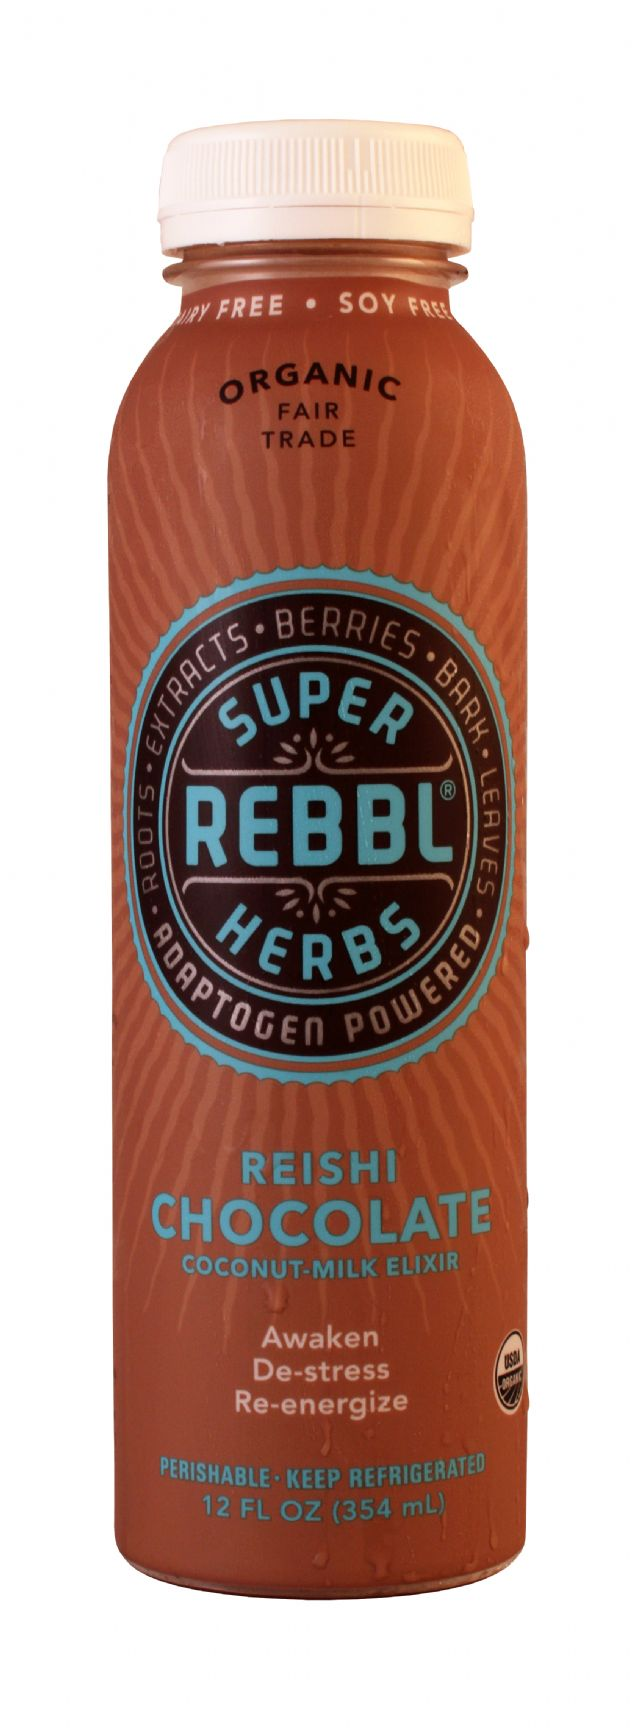 REBBL Super Herbs: Rebbl Chocolate Front